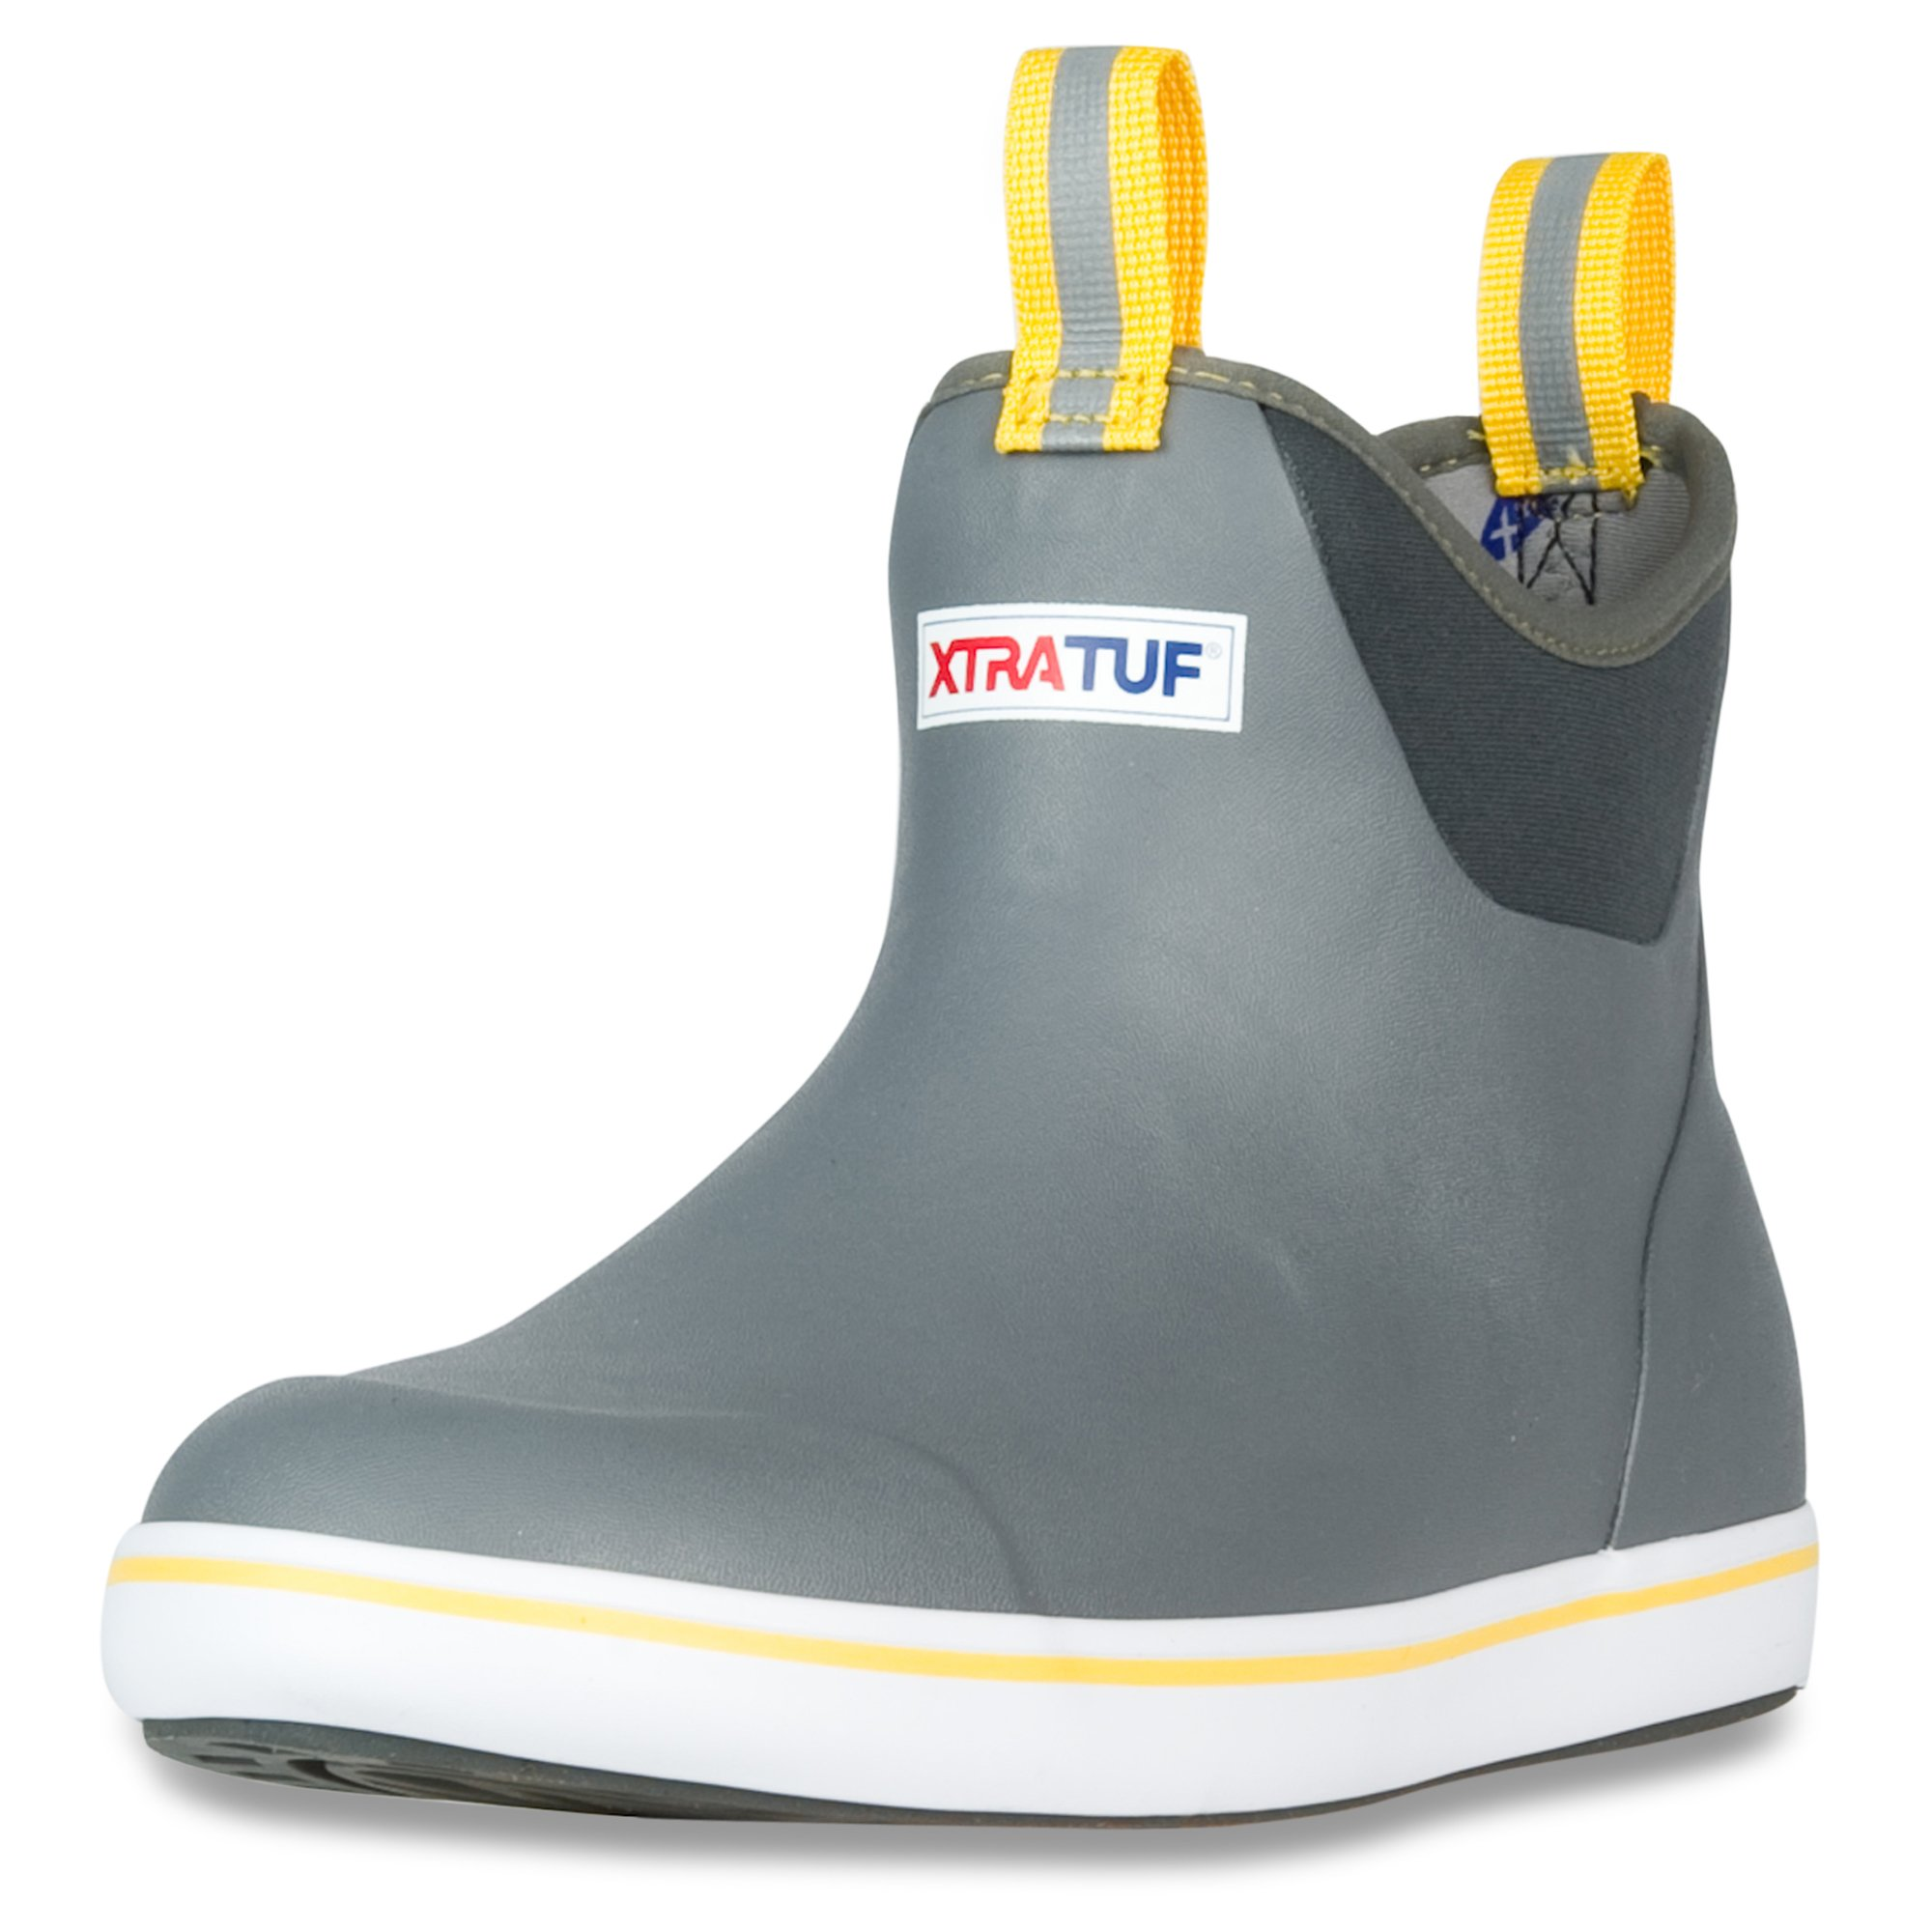 Xtratuf 22735-GRY-120 Performance Series 6'' Men's Full Rubber Ankle Deck Boots, Gray & Yellow (22735)